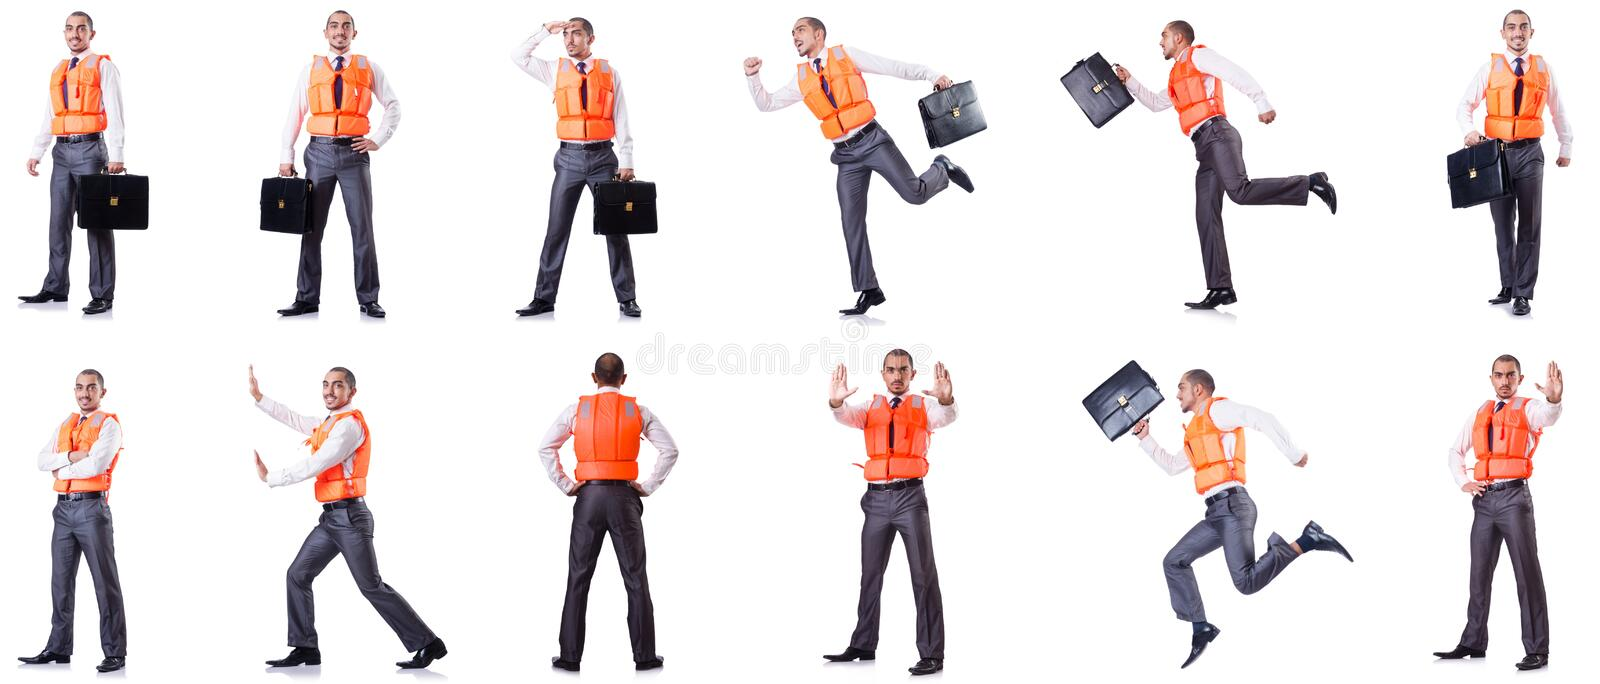 The man in life jacket isolated on white. Man in life jacket isolated on white royalty free stock image